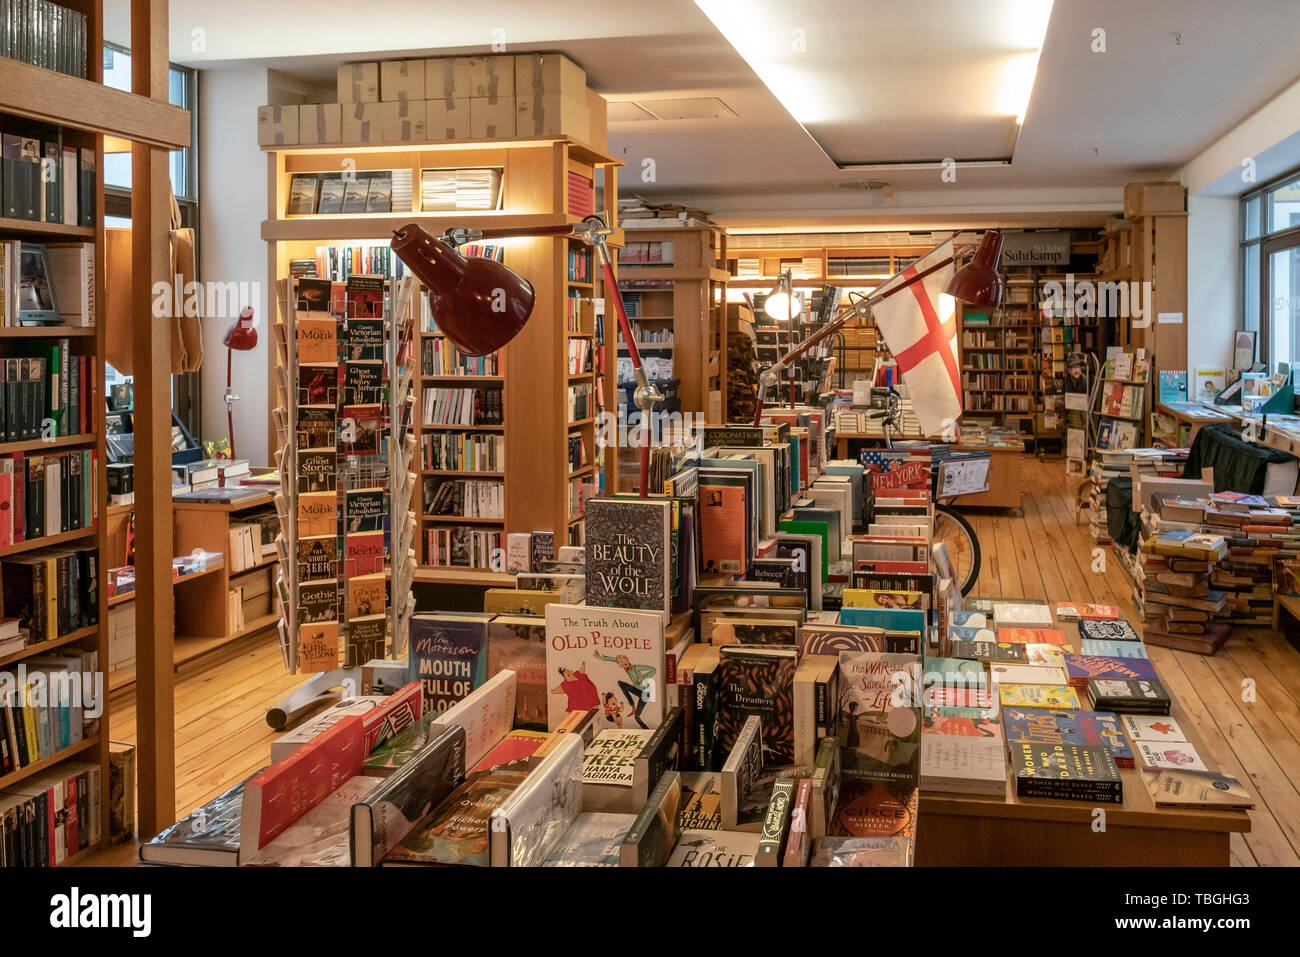 Connewitzer Verlagsbuchhandlung, famous book shop in Specks Hof , Leipzig, Germany - Stock Image